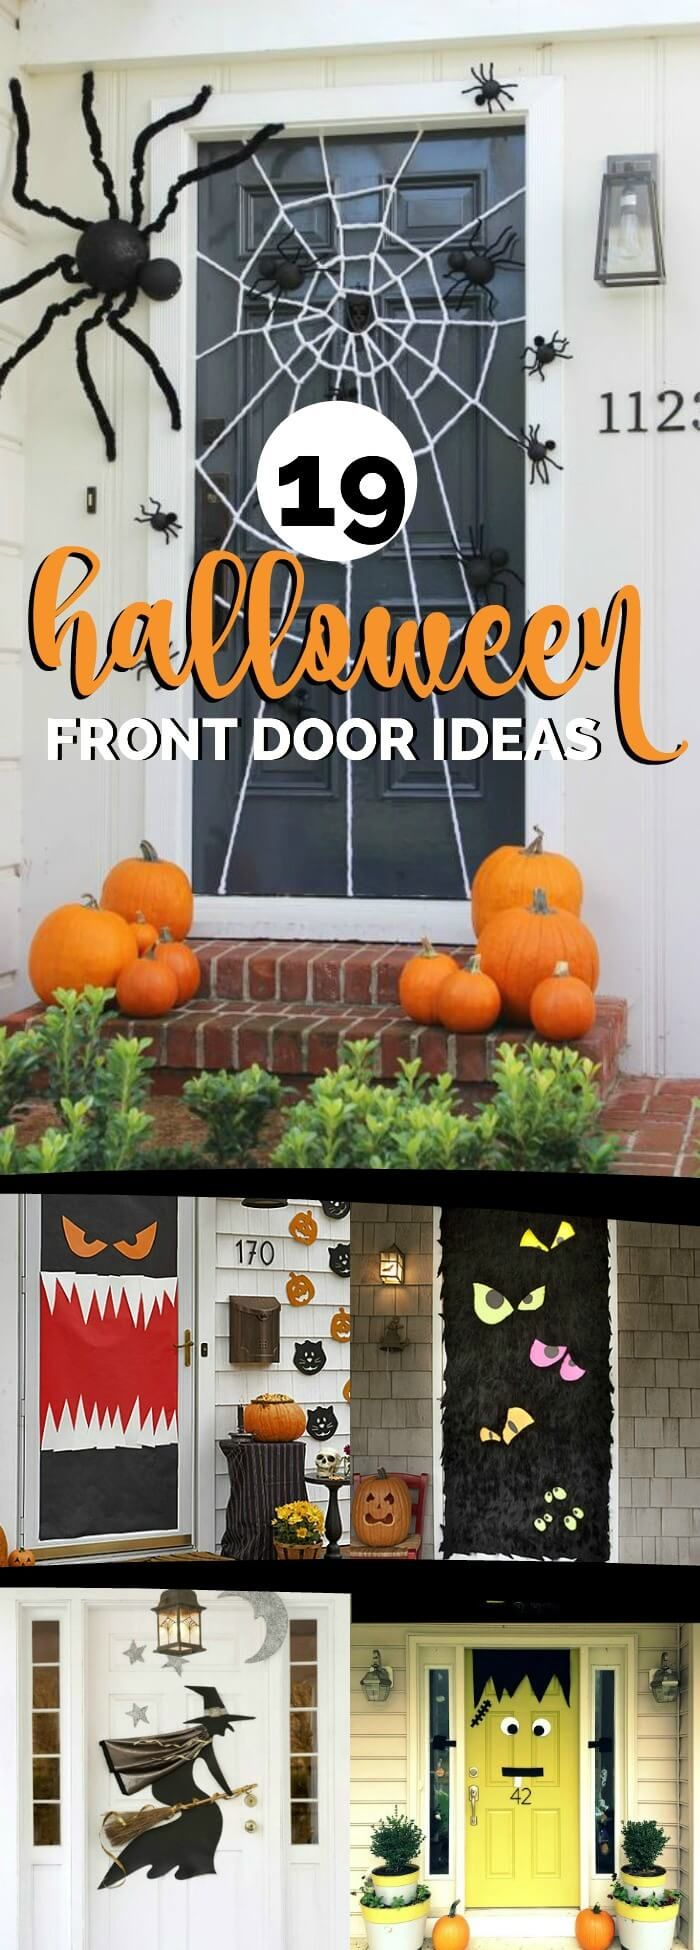 Halloween fice Door Decorating Ideas